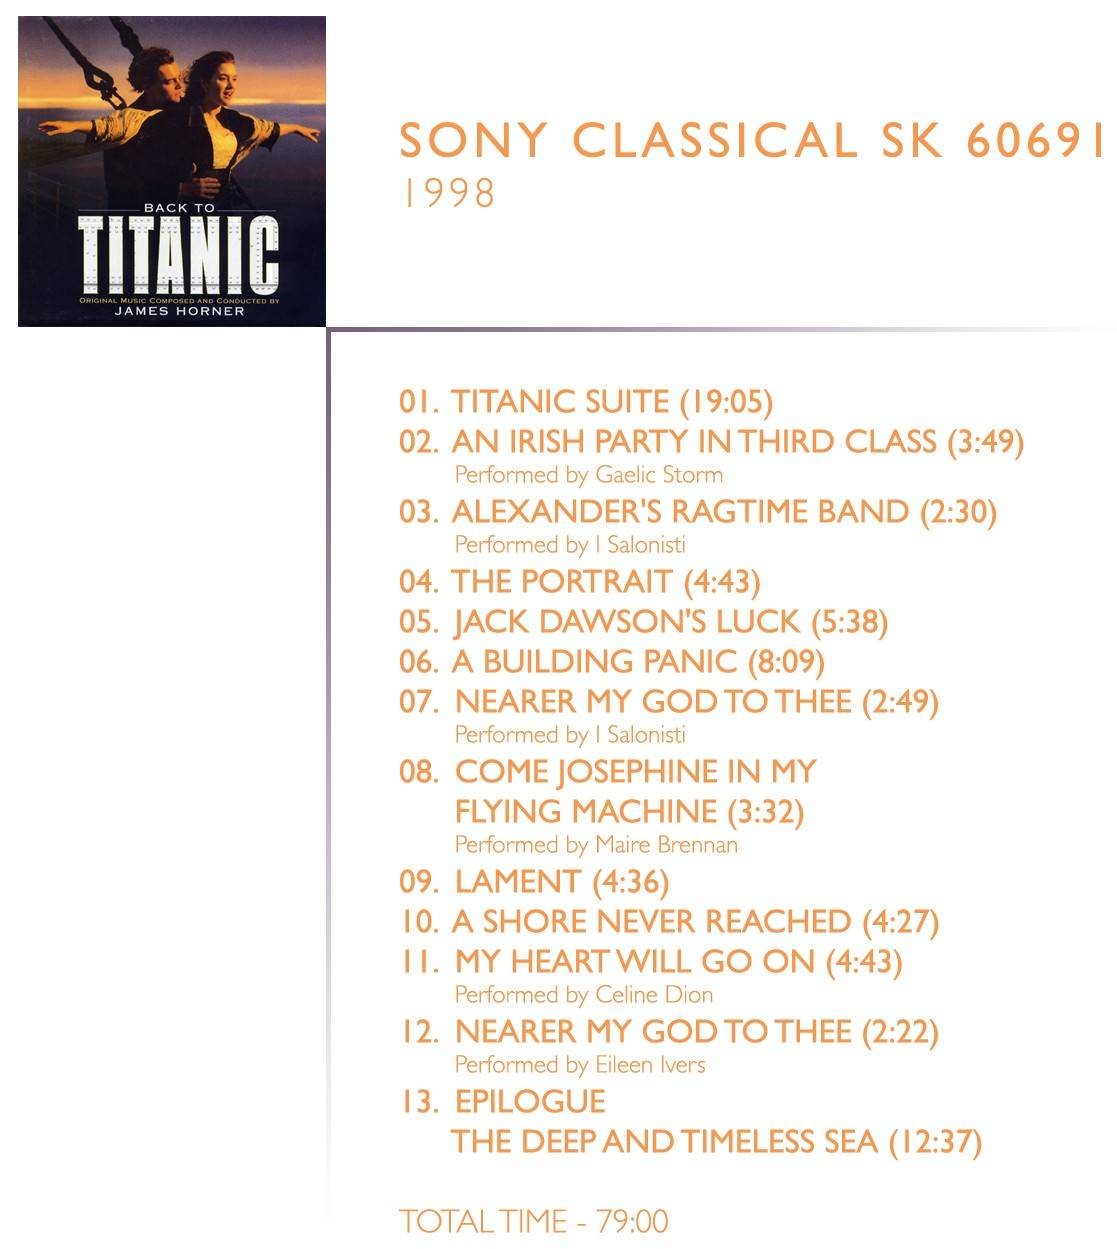 1.  	Titanic Suite (19:05) 2.  	An Irish Party In Third Class (03:48) performed by Gaelic Storm 3.  	Alexander's Ragtime Band (02:31) performed by I Salonisti 4.  	The Portrait (04:43) 5.  	Jack Dawson's Luck (05:39) 6.  	A Building Panic (08:09) 7.  	Nearer My God To Thee (02:50) performed by I Salonisti 8.  	Come Josephine, In My Flying Machine (03:33) performed by Maire Brennan 9.  	Lament (04:36) 10.  	A Shore Never Reached (04:28) 11.  	My Heart Will Go On (Dialogue Version) (04:43) performed by Celine Dion 12.  	Epilogue: The Deep And Timeless Sea (12:37)